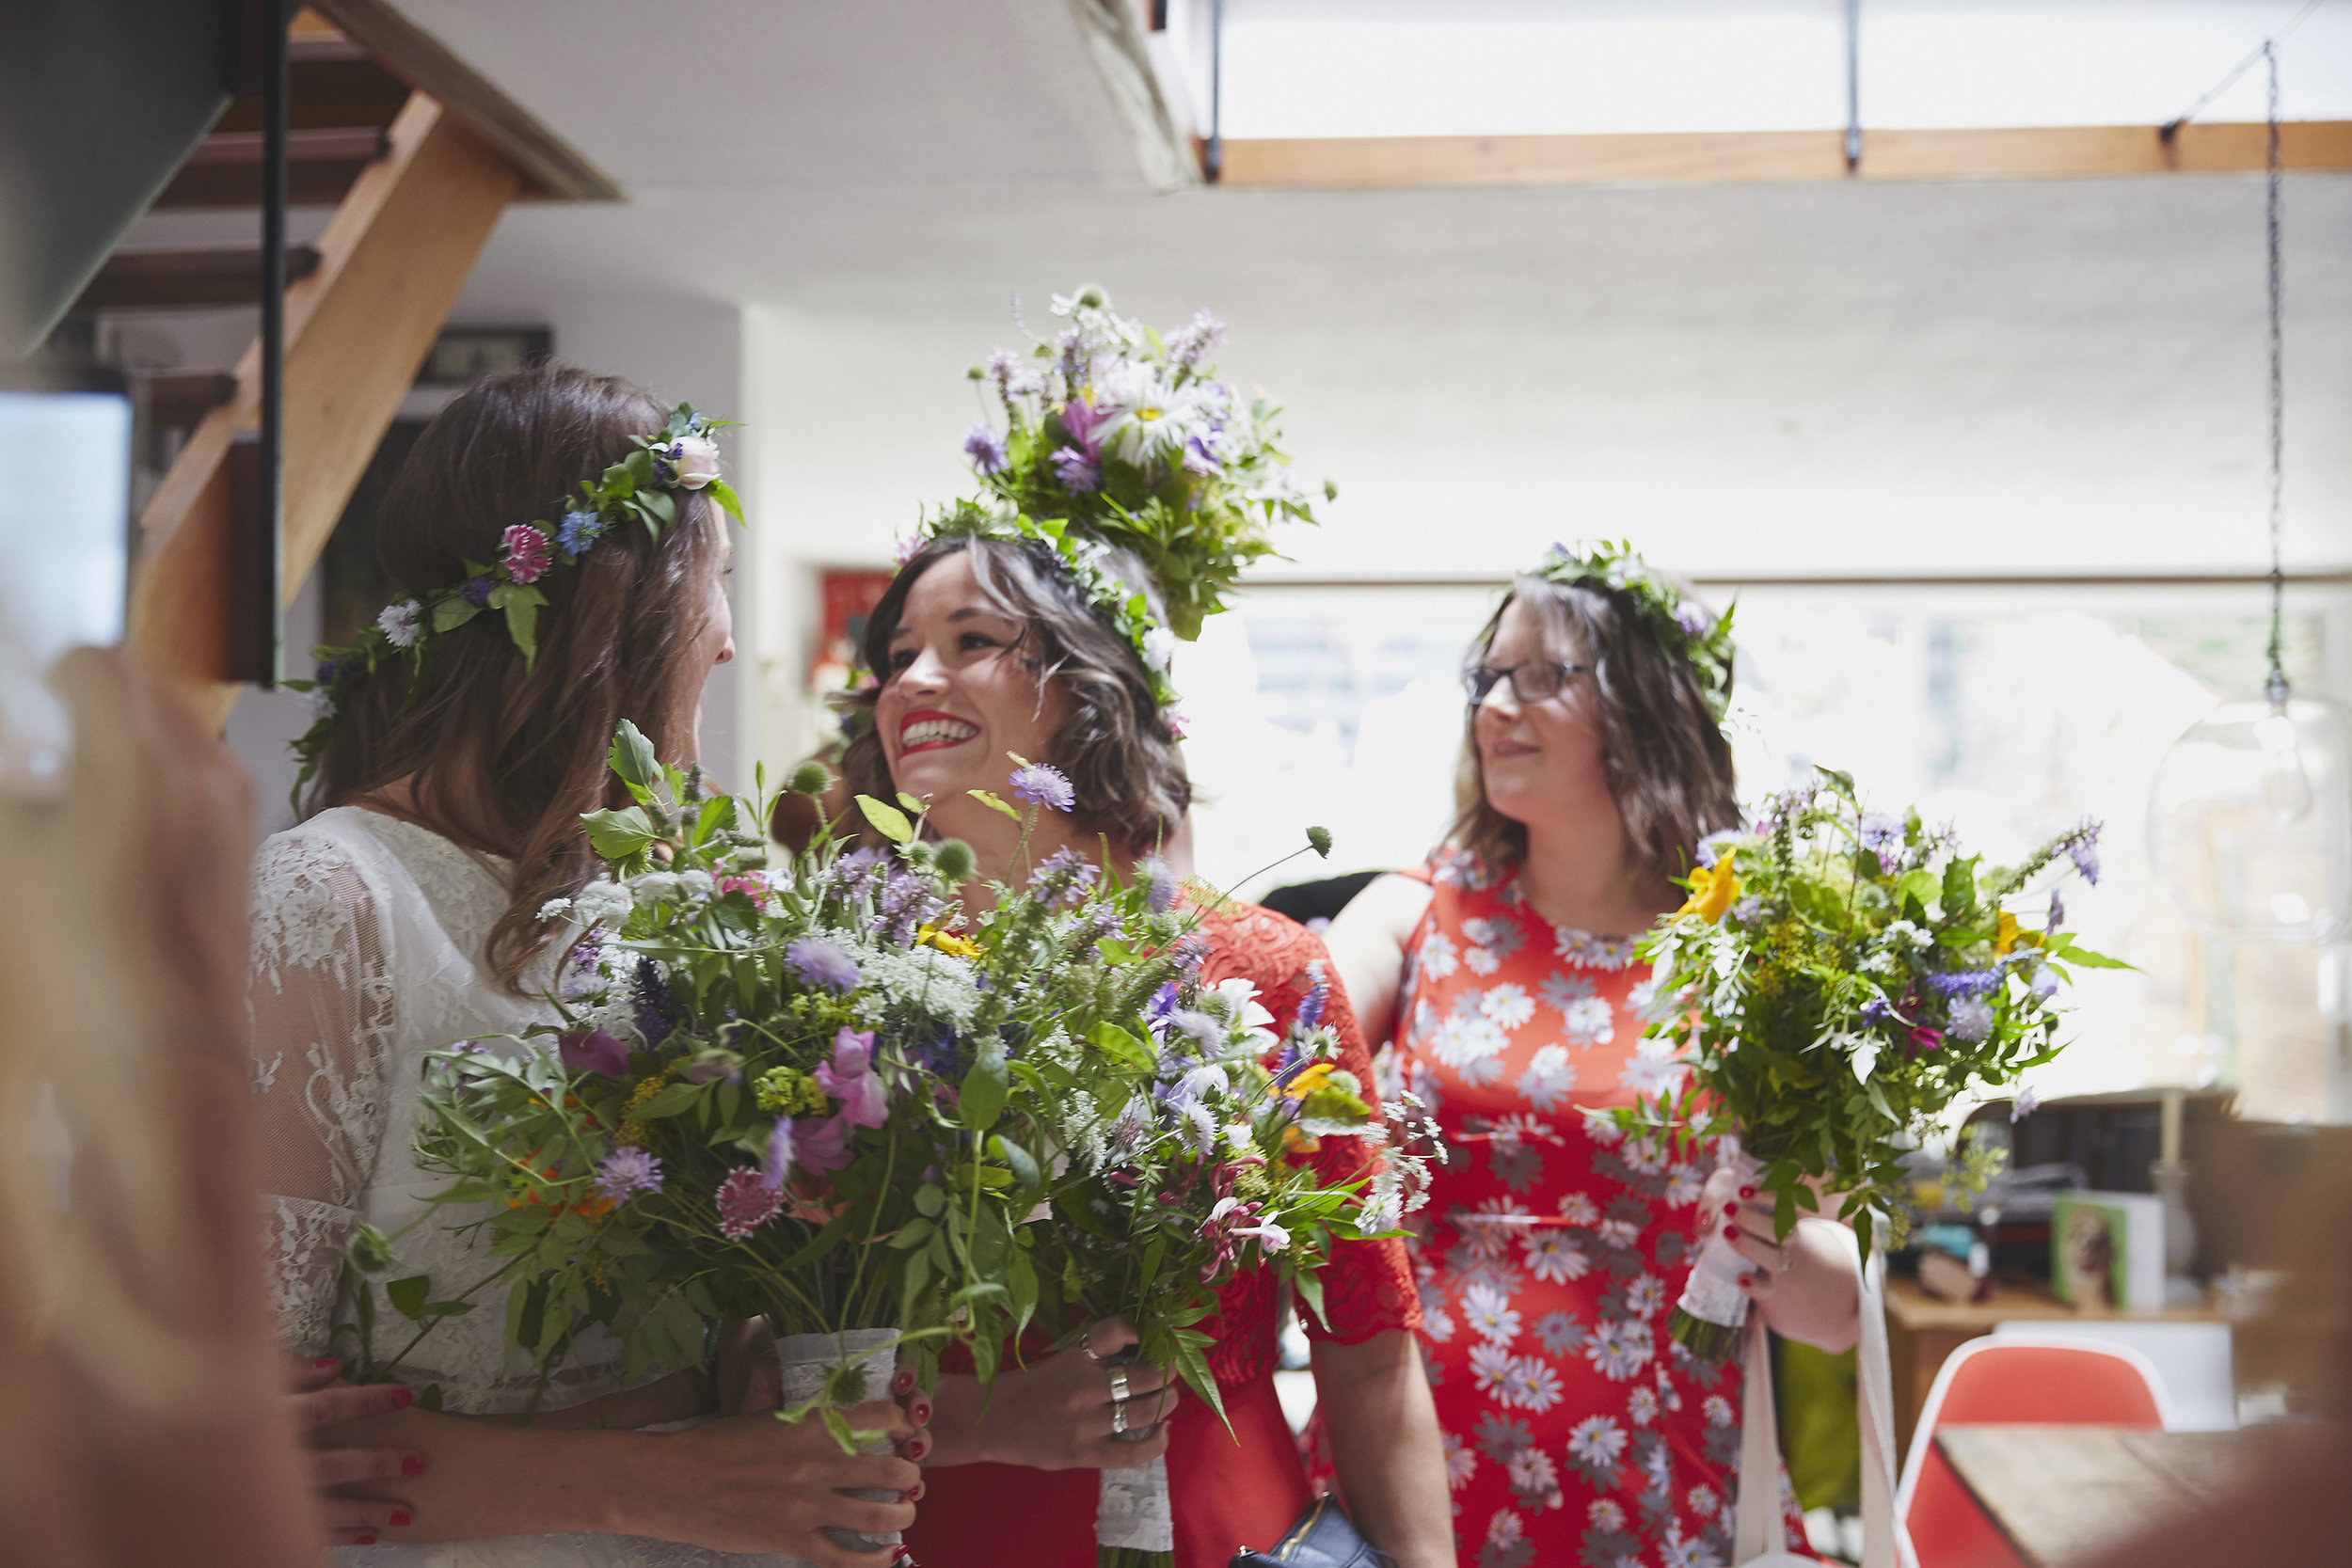 Bride and bridesmaid hidng in the flowers!